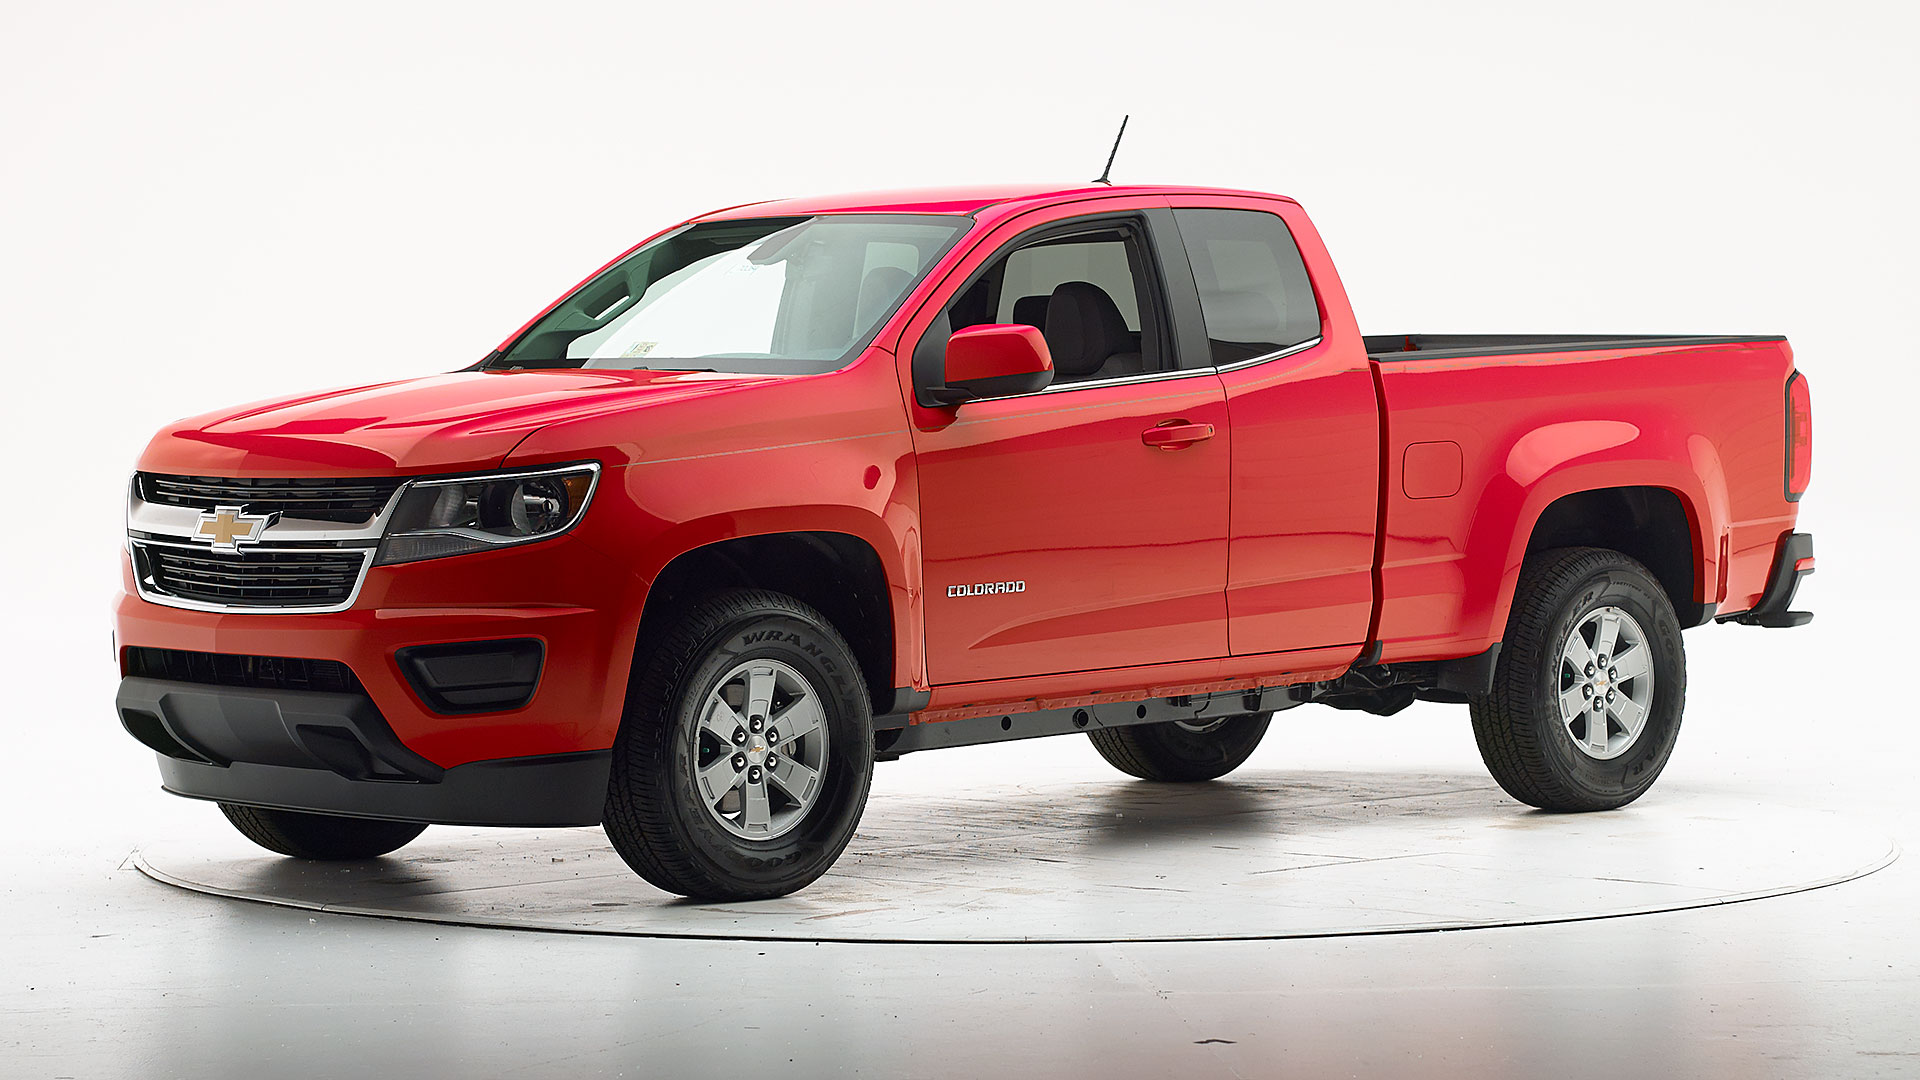 2020 Chevrolet Colorado Extended cab pickup